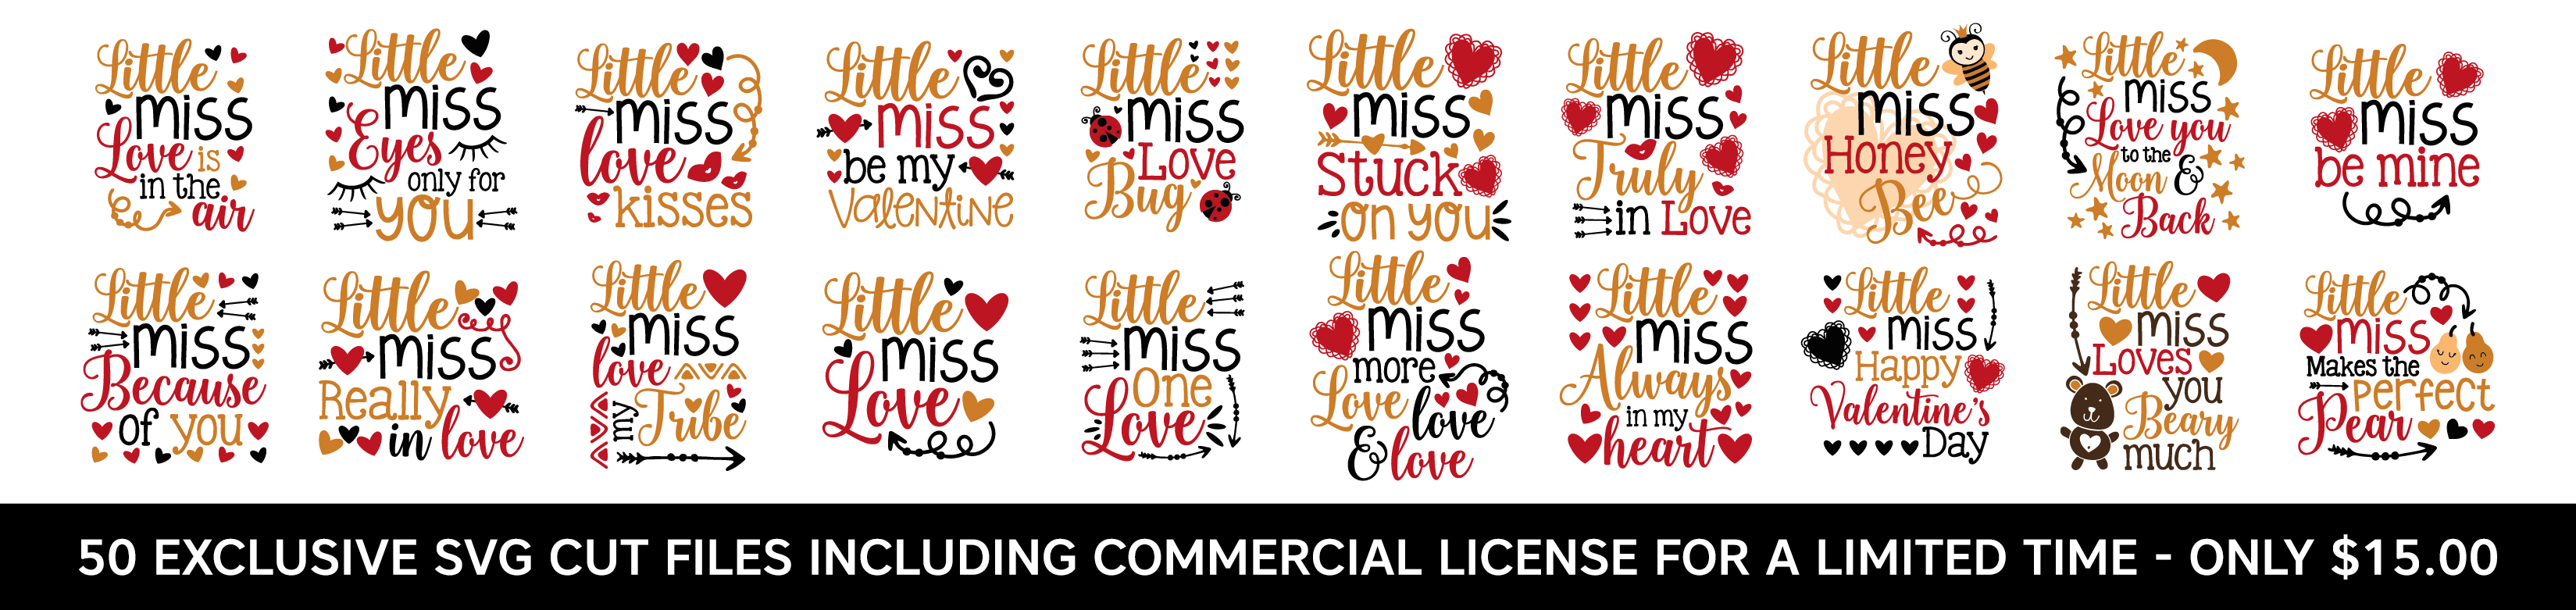 Exclusive Designs - Little Miss Valentine - Including Commerical License